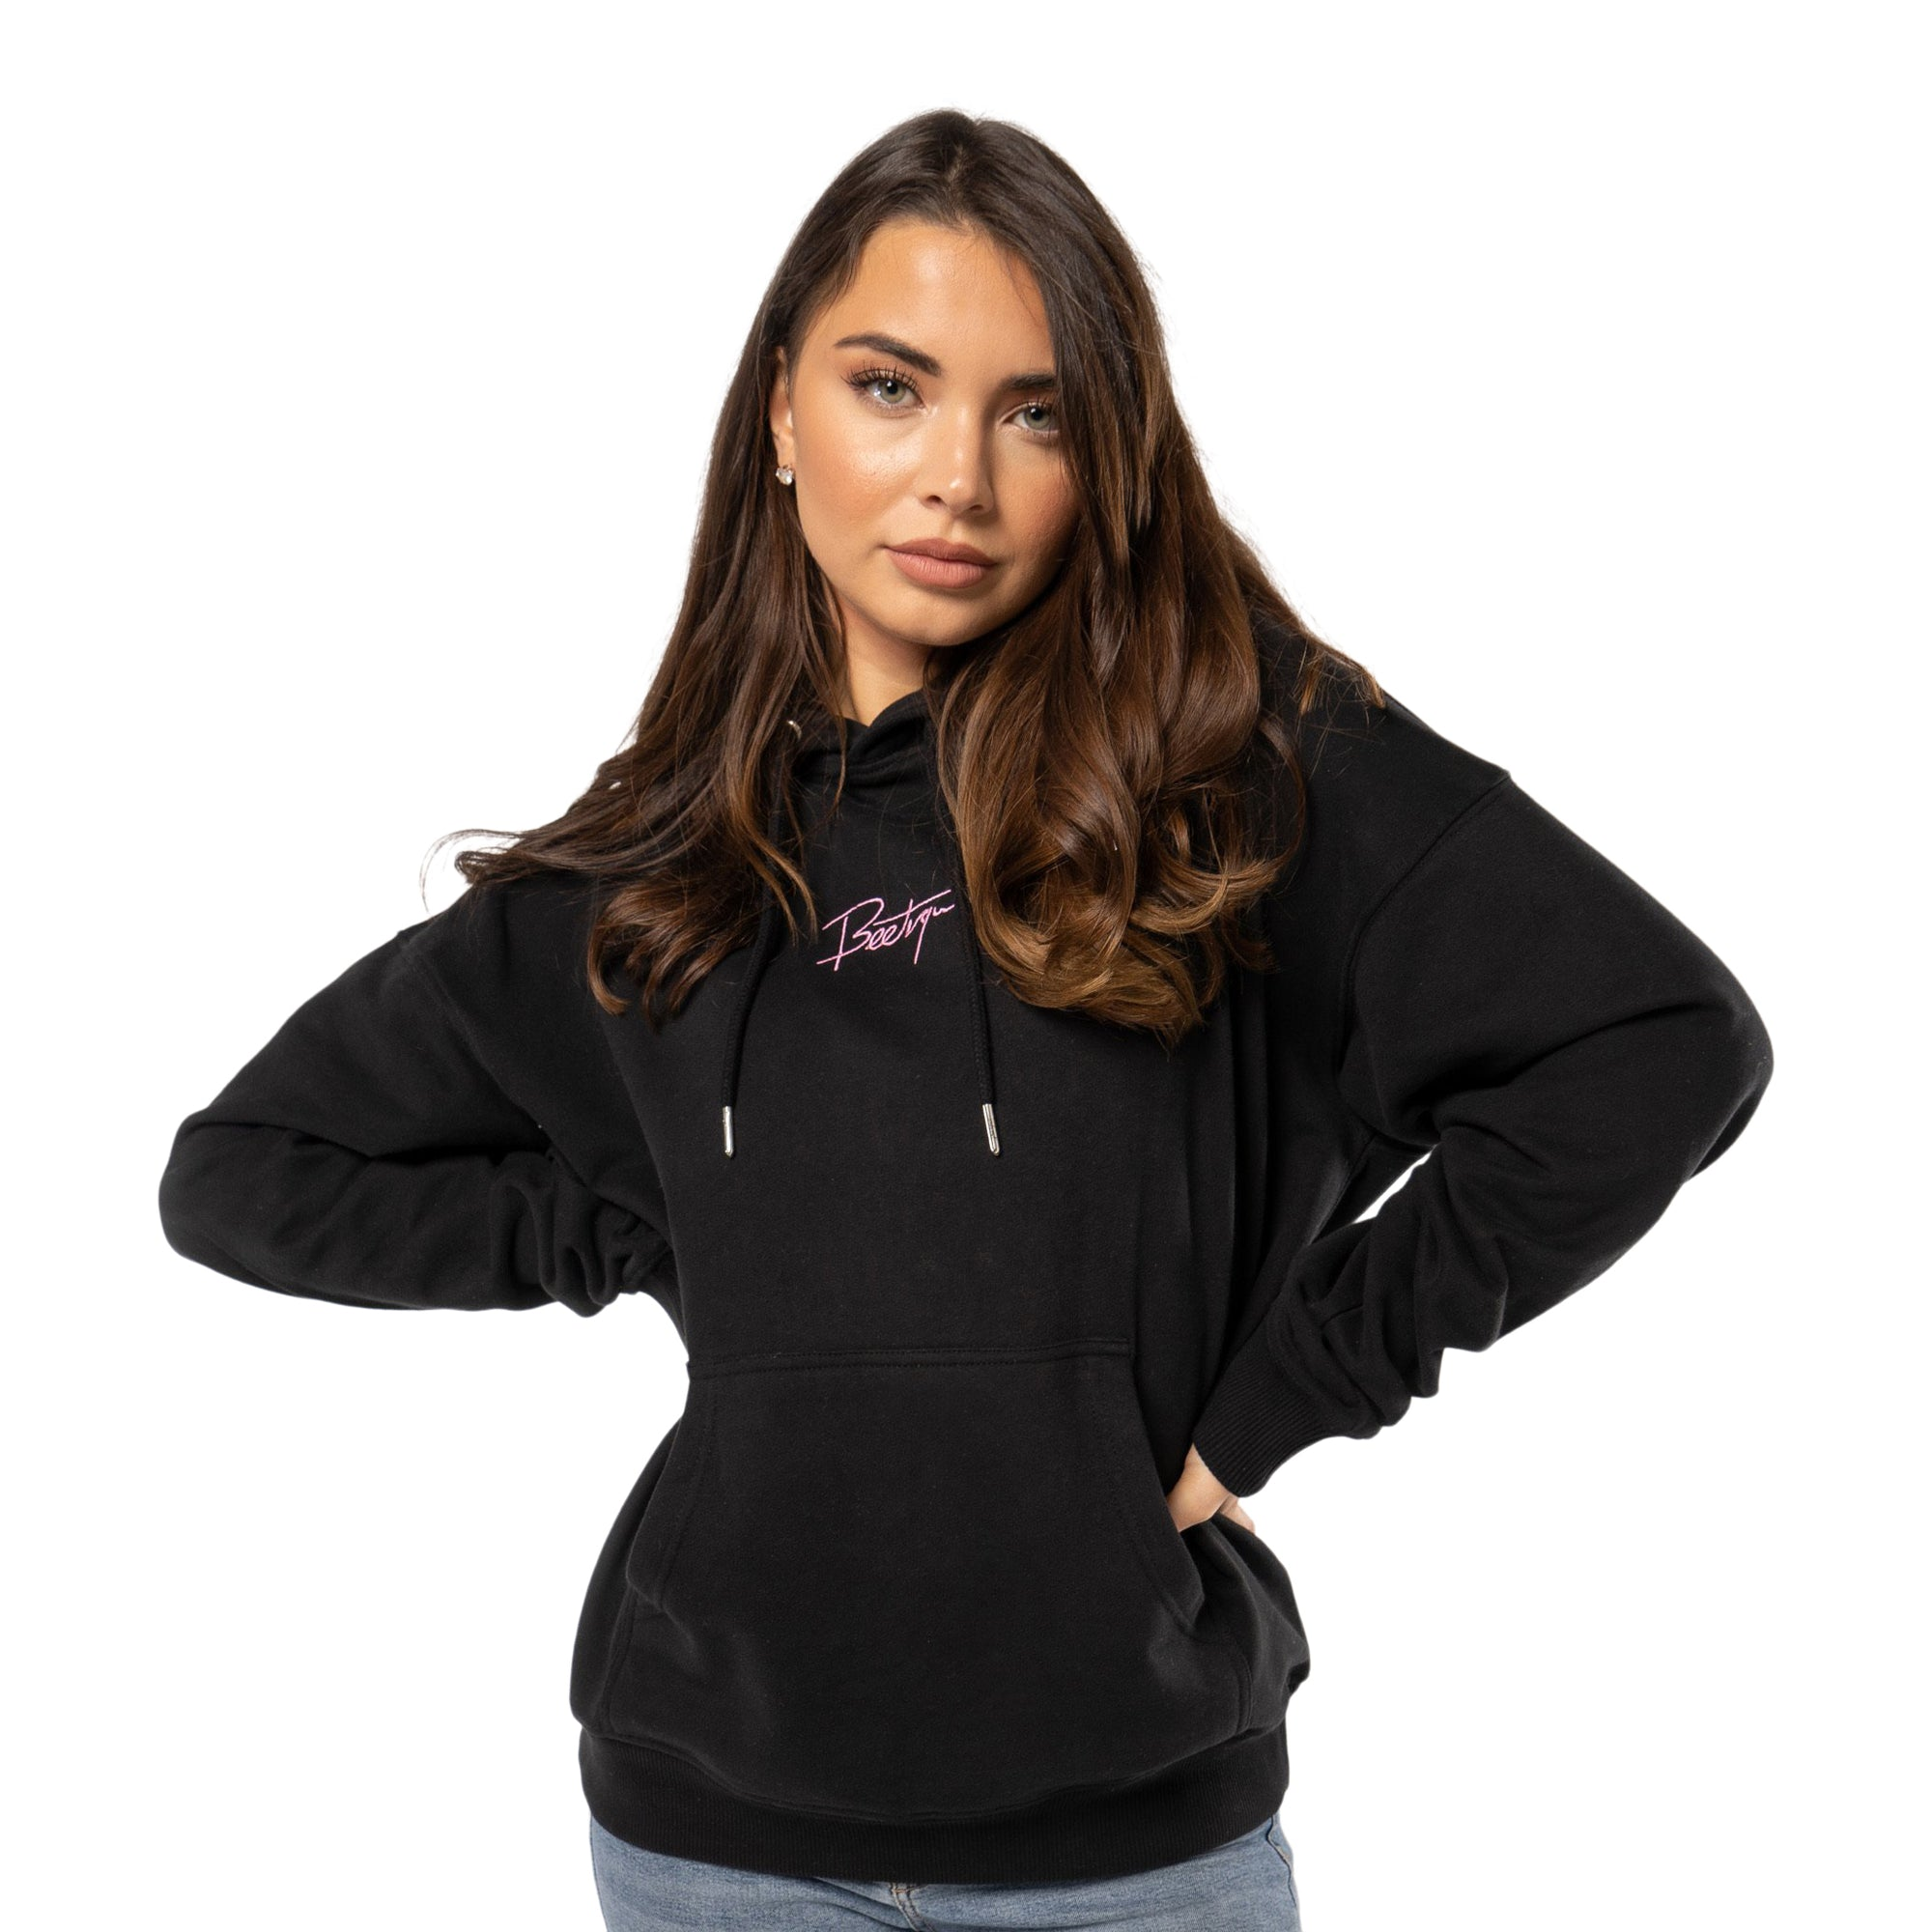 Beetique Basic Hoodie Black I 100% Baumwolle I Kosmetik- und Make Up Brand